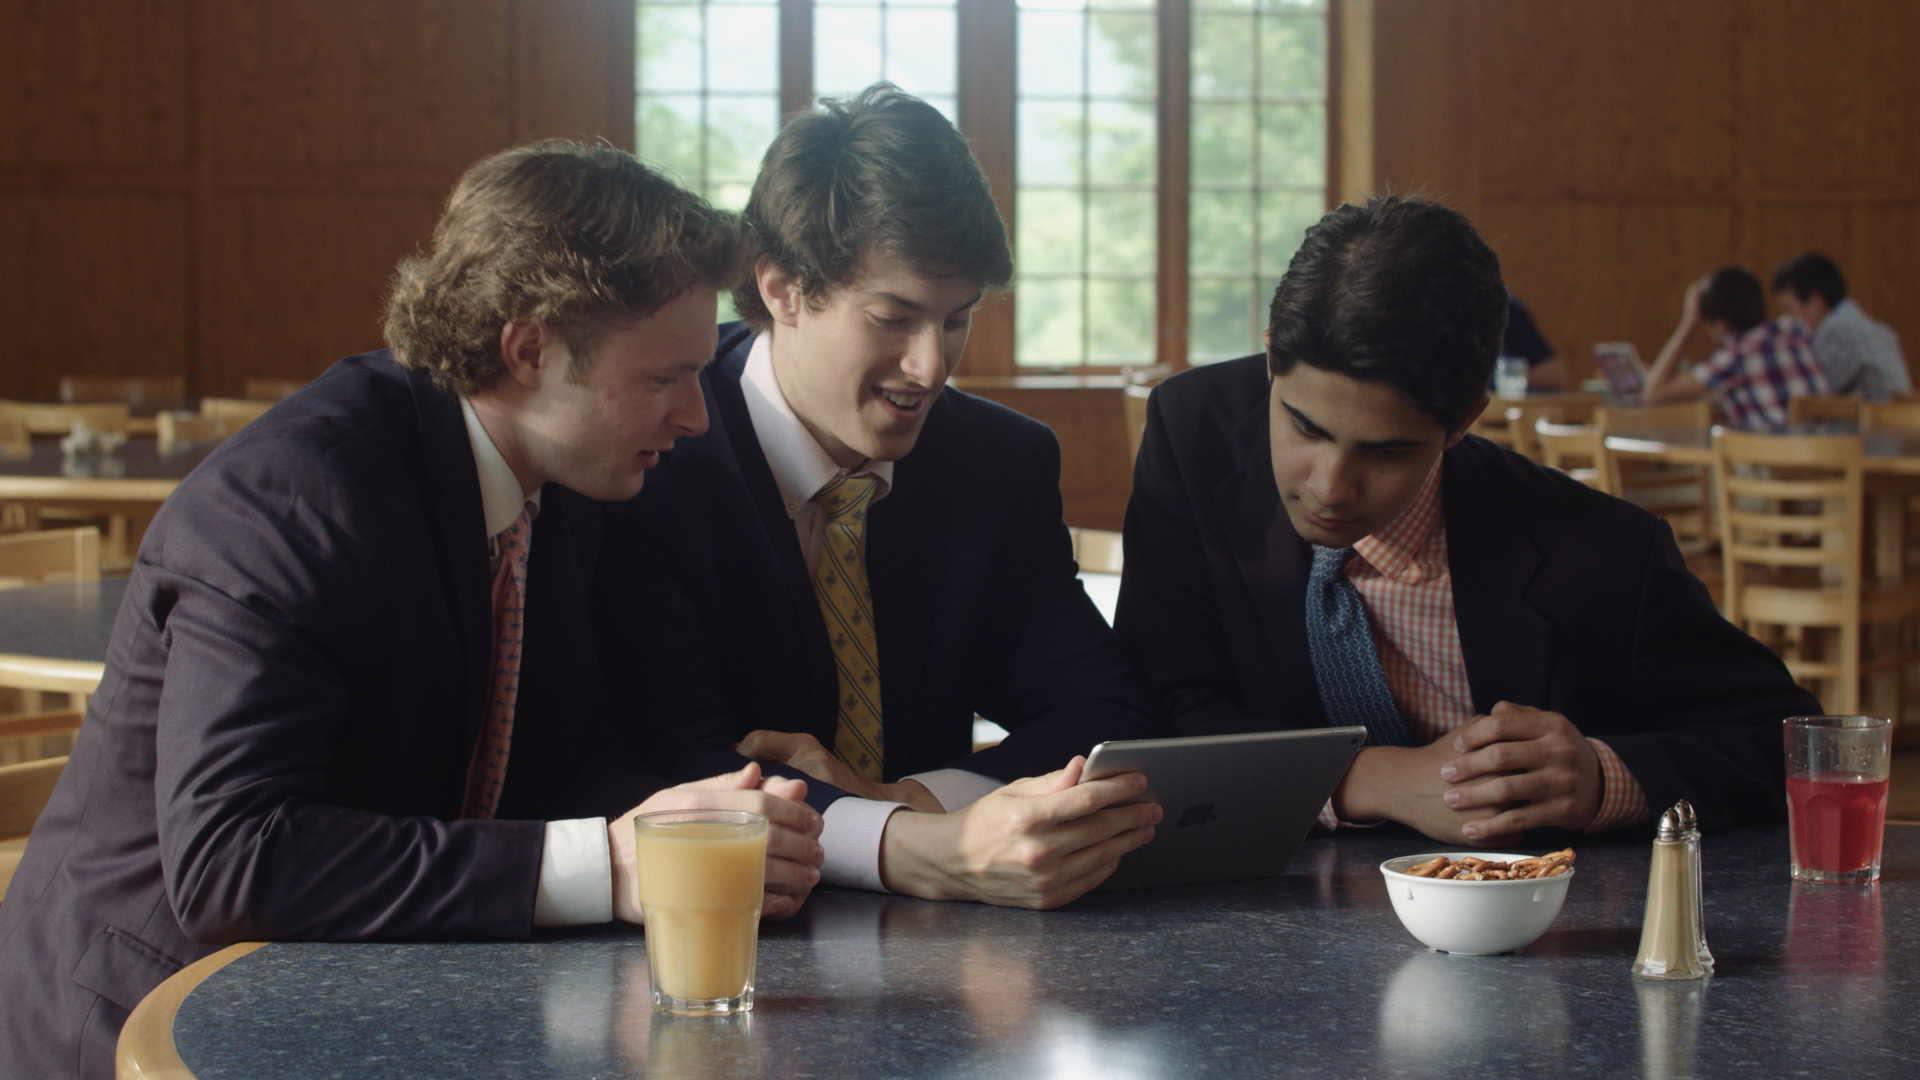 Three hockey players from TP watching game footage on an ipad. We shot this on the Ursa Mini Pro during lunch hour in the dining hall.